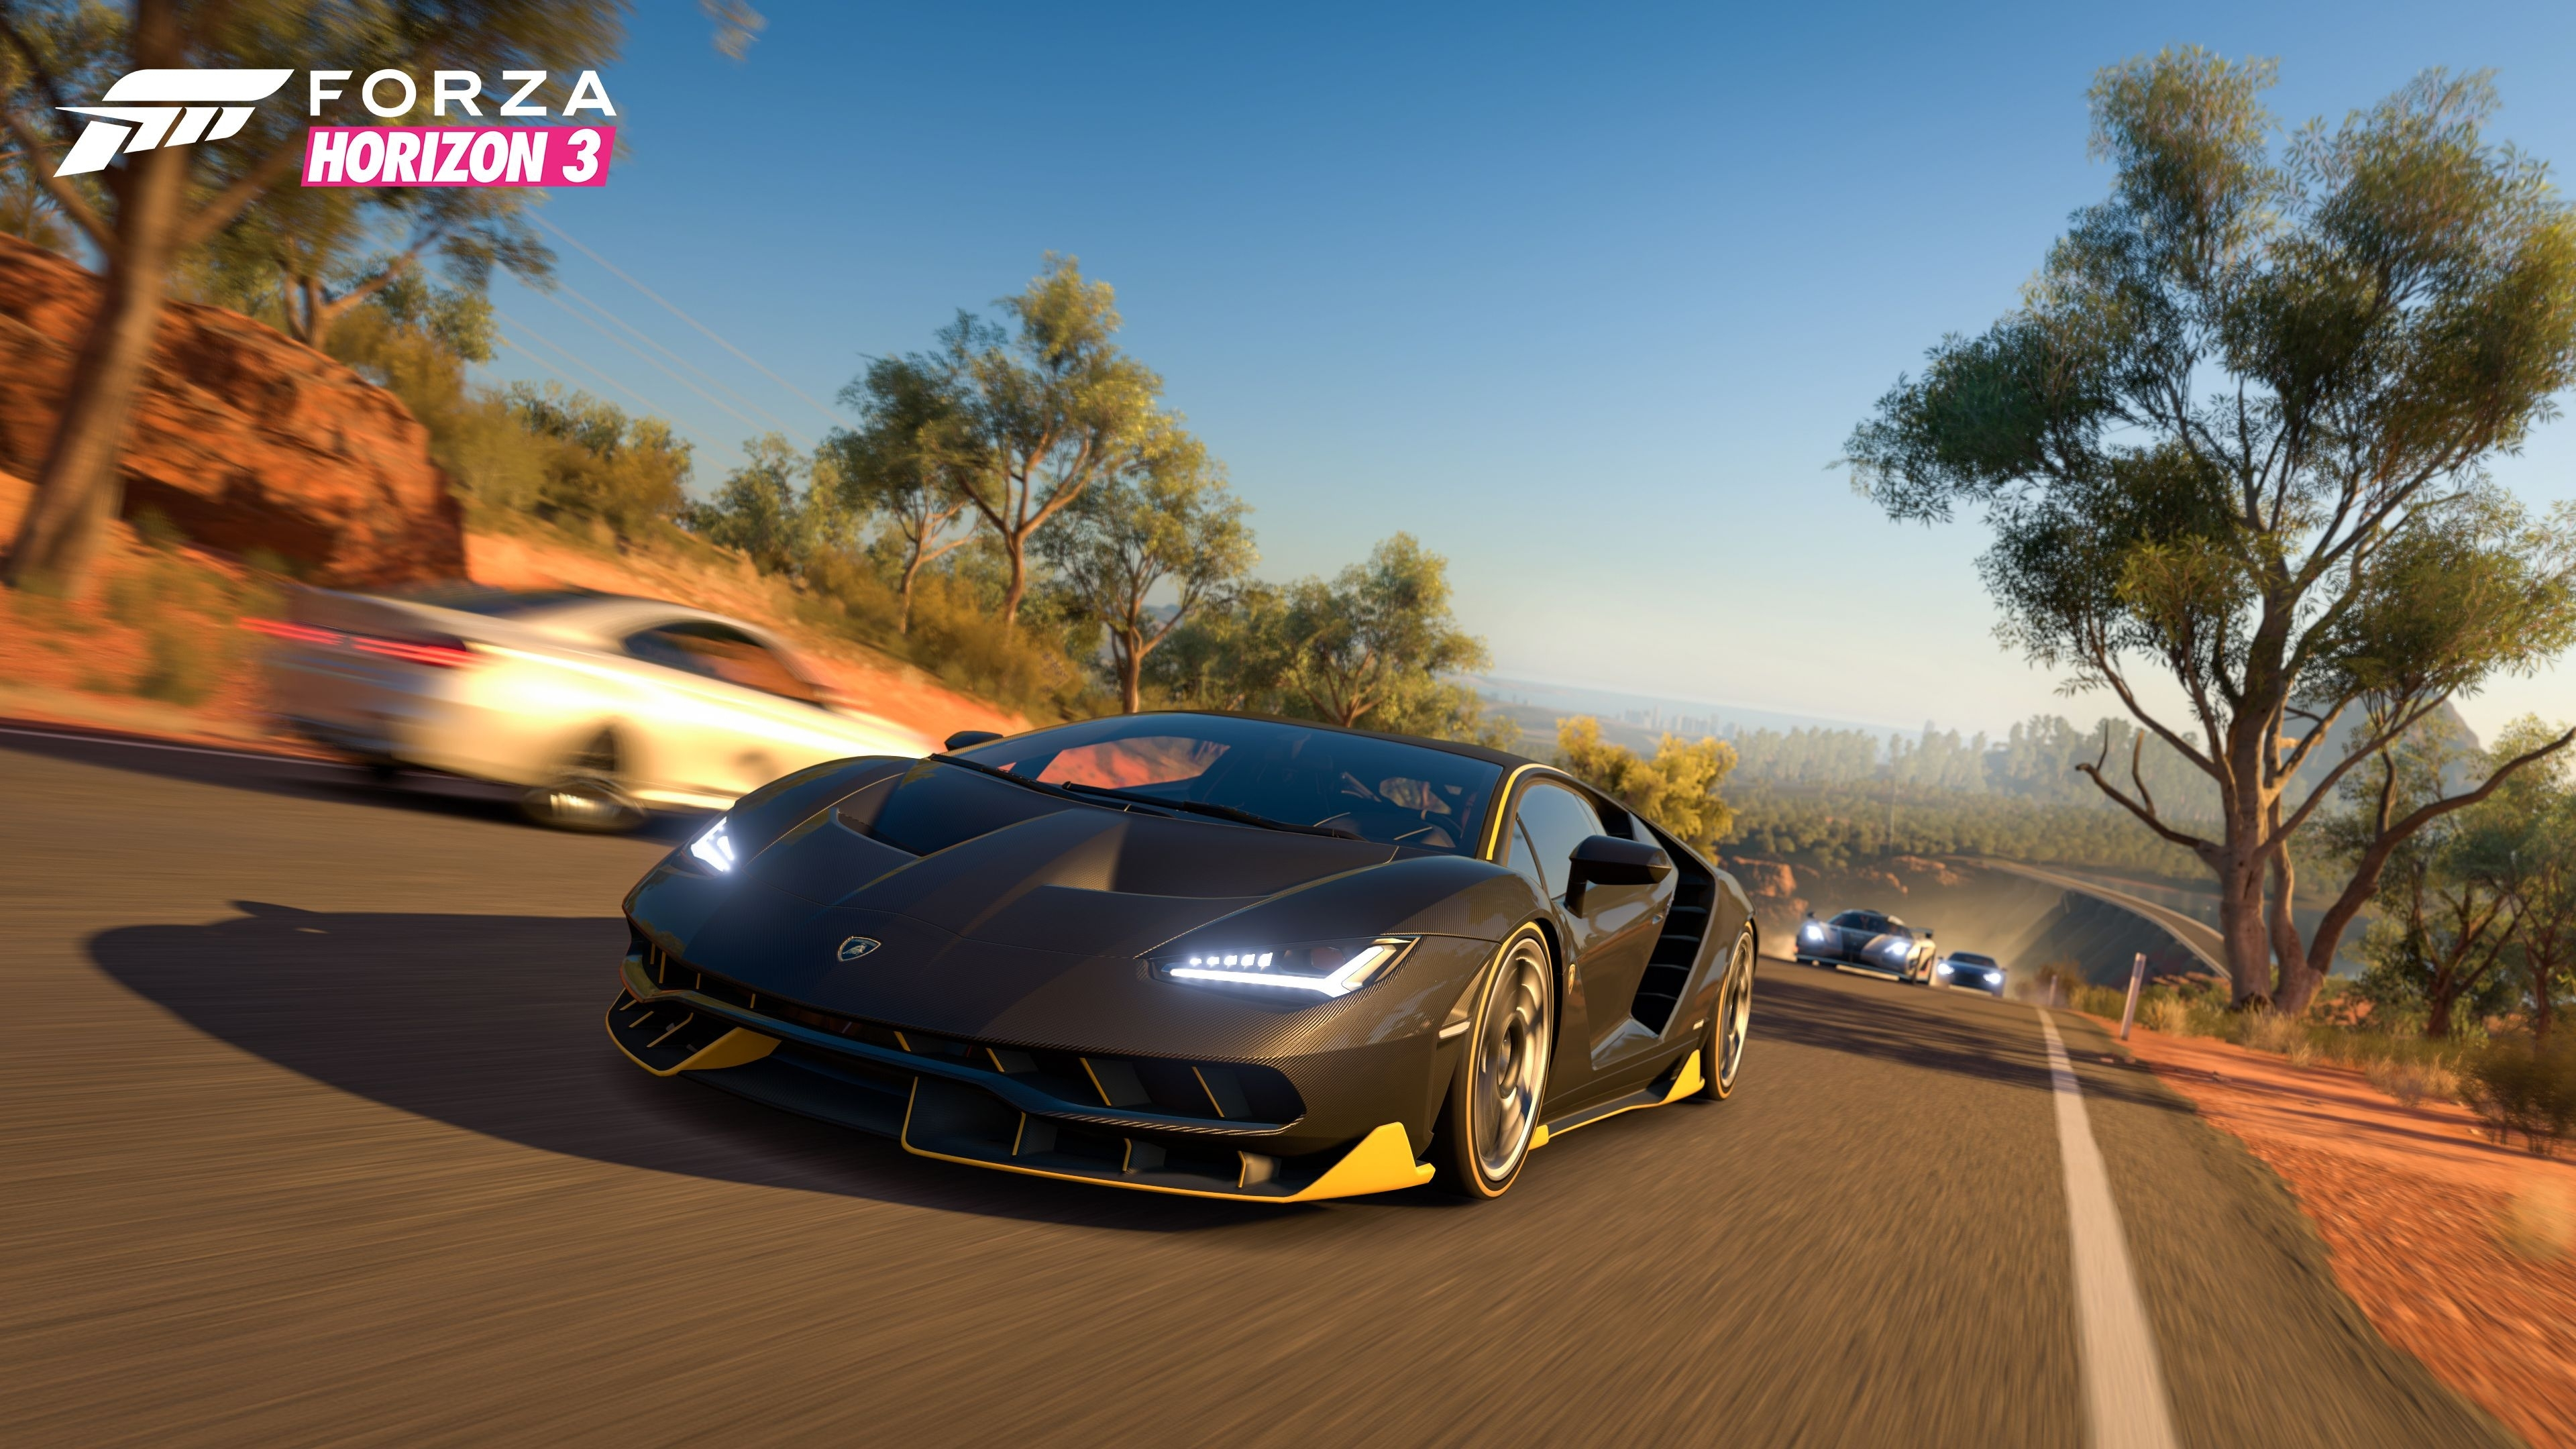 218 forza horizon 3 hd wallpapers | background images - wallpaper abyss